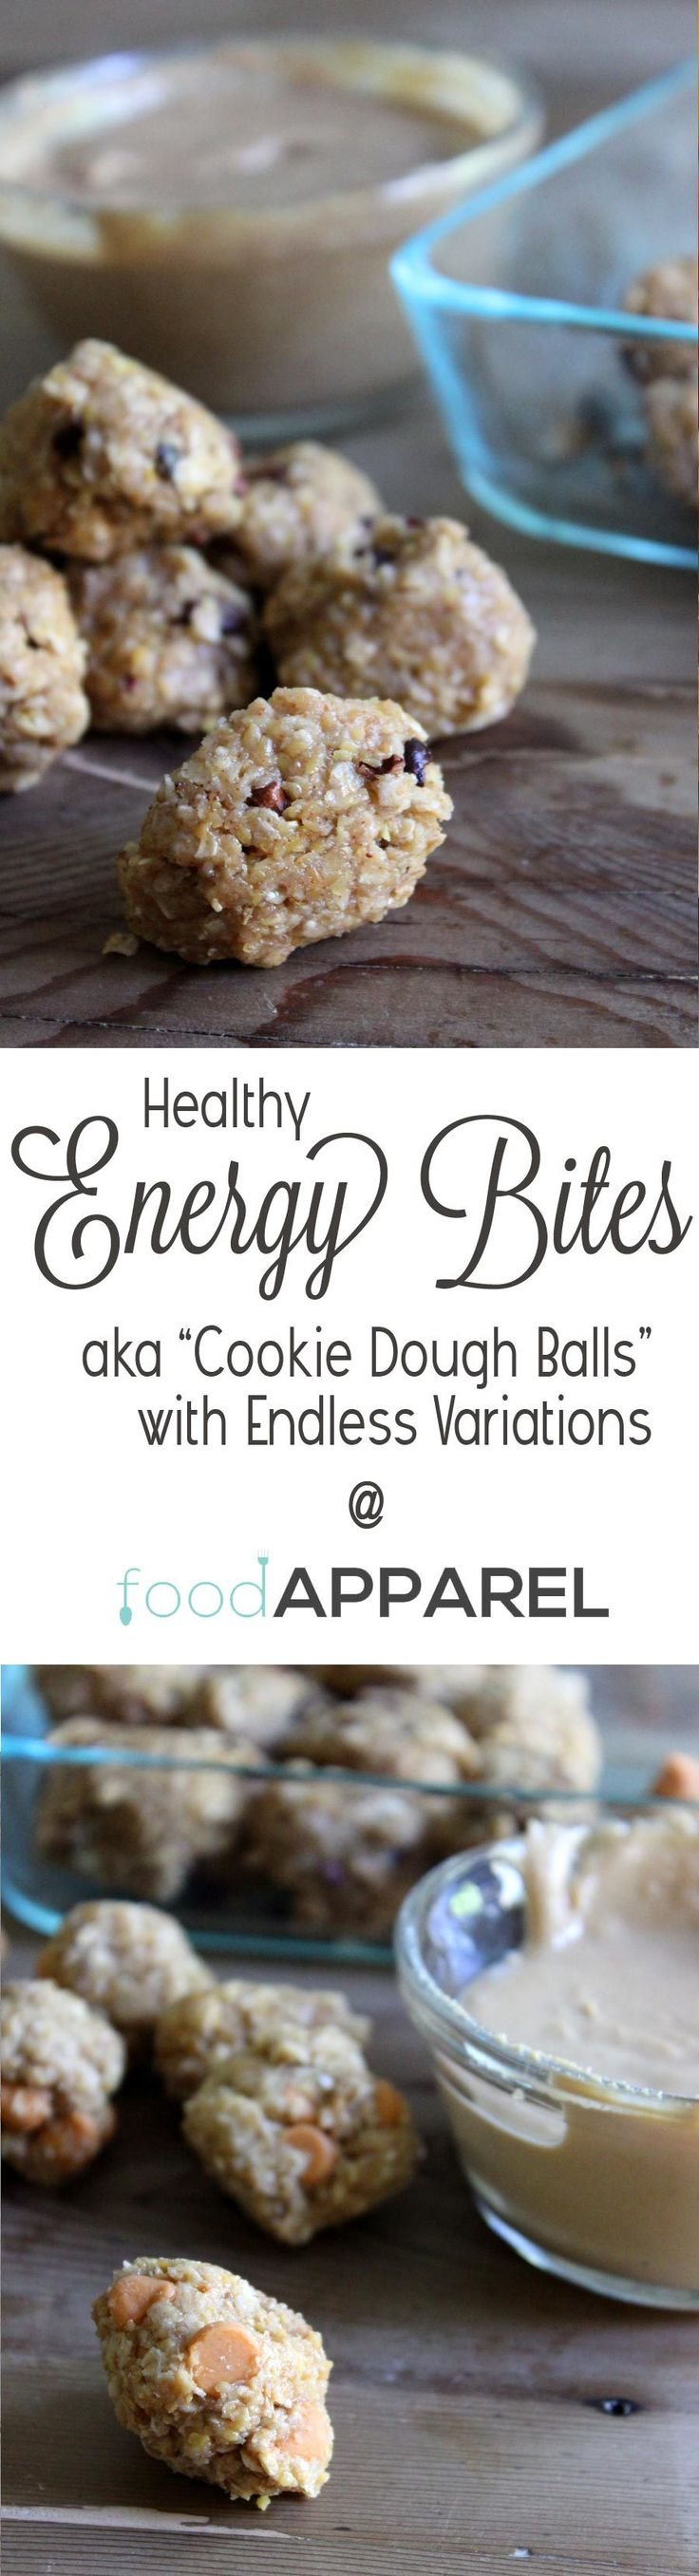 """Healthy Energy Bites Recipe with Endless Variations! And your kids will call them """"Cookie Dough Balls"""""""